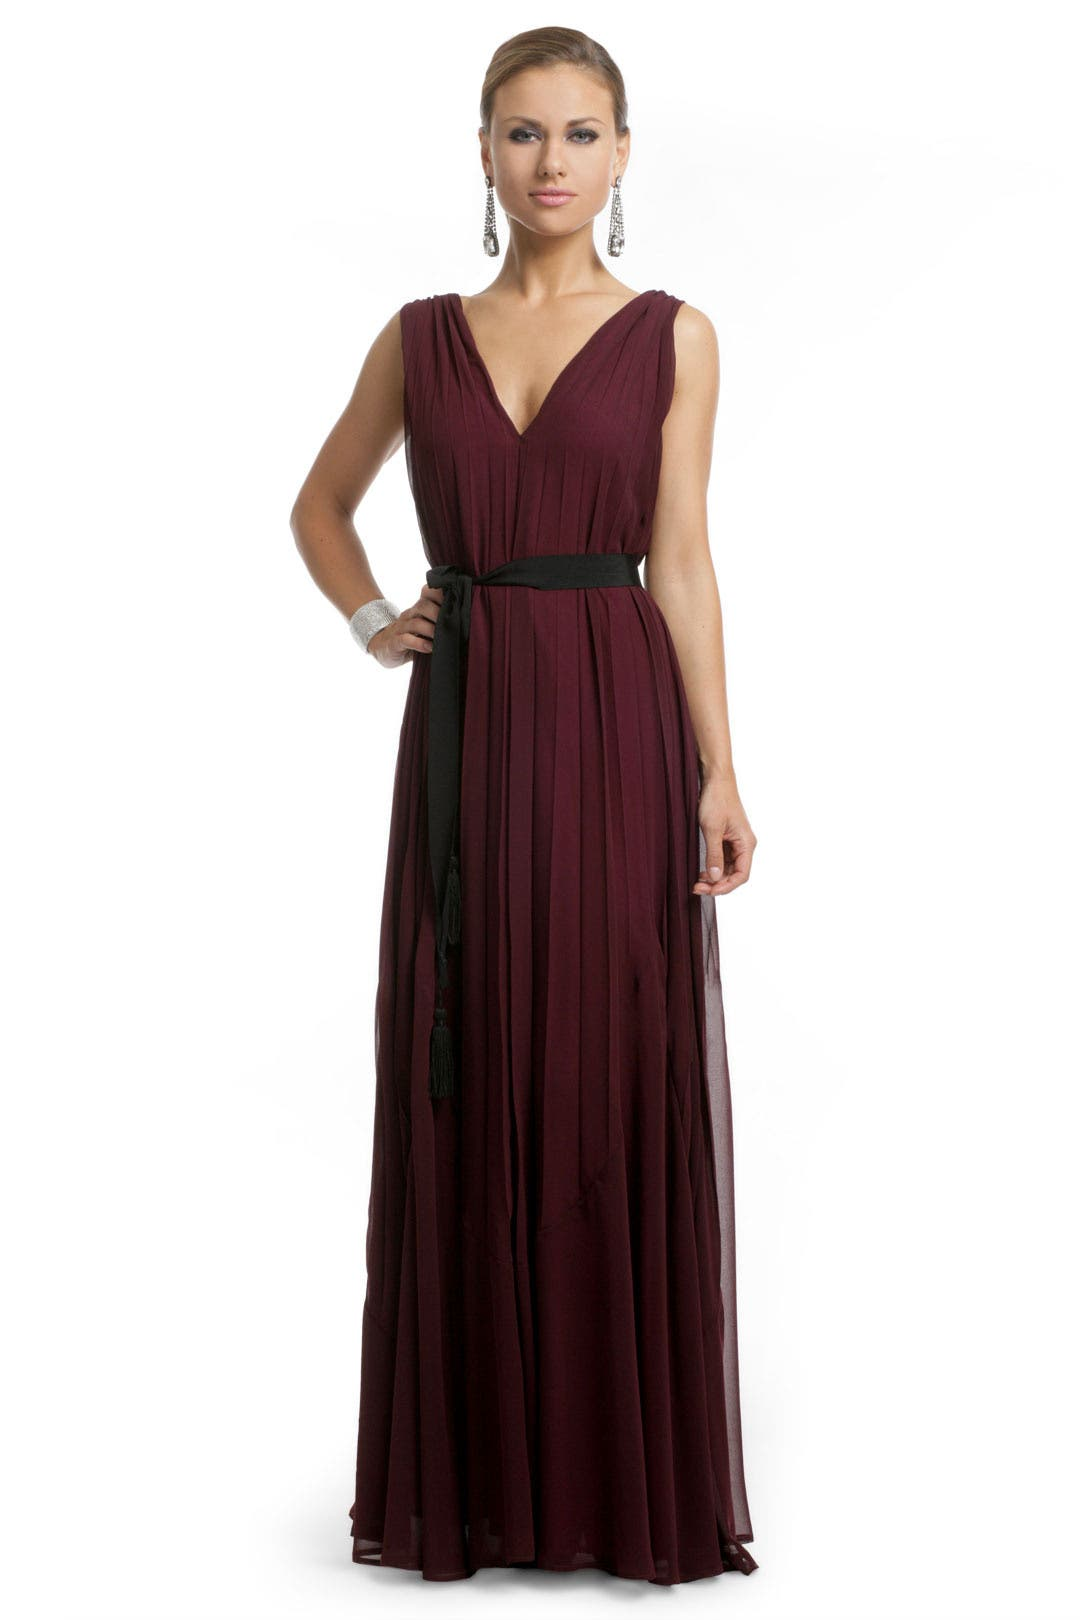 Burgundy Bliss Gown by Twelfth Street by Cynthia Vincent